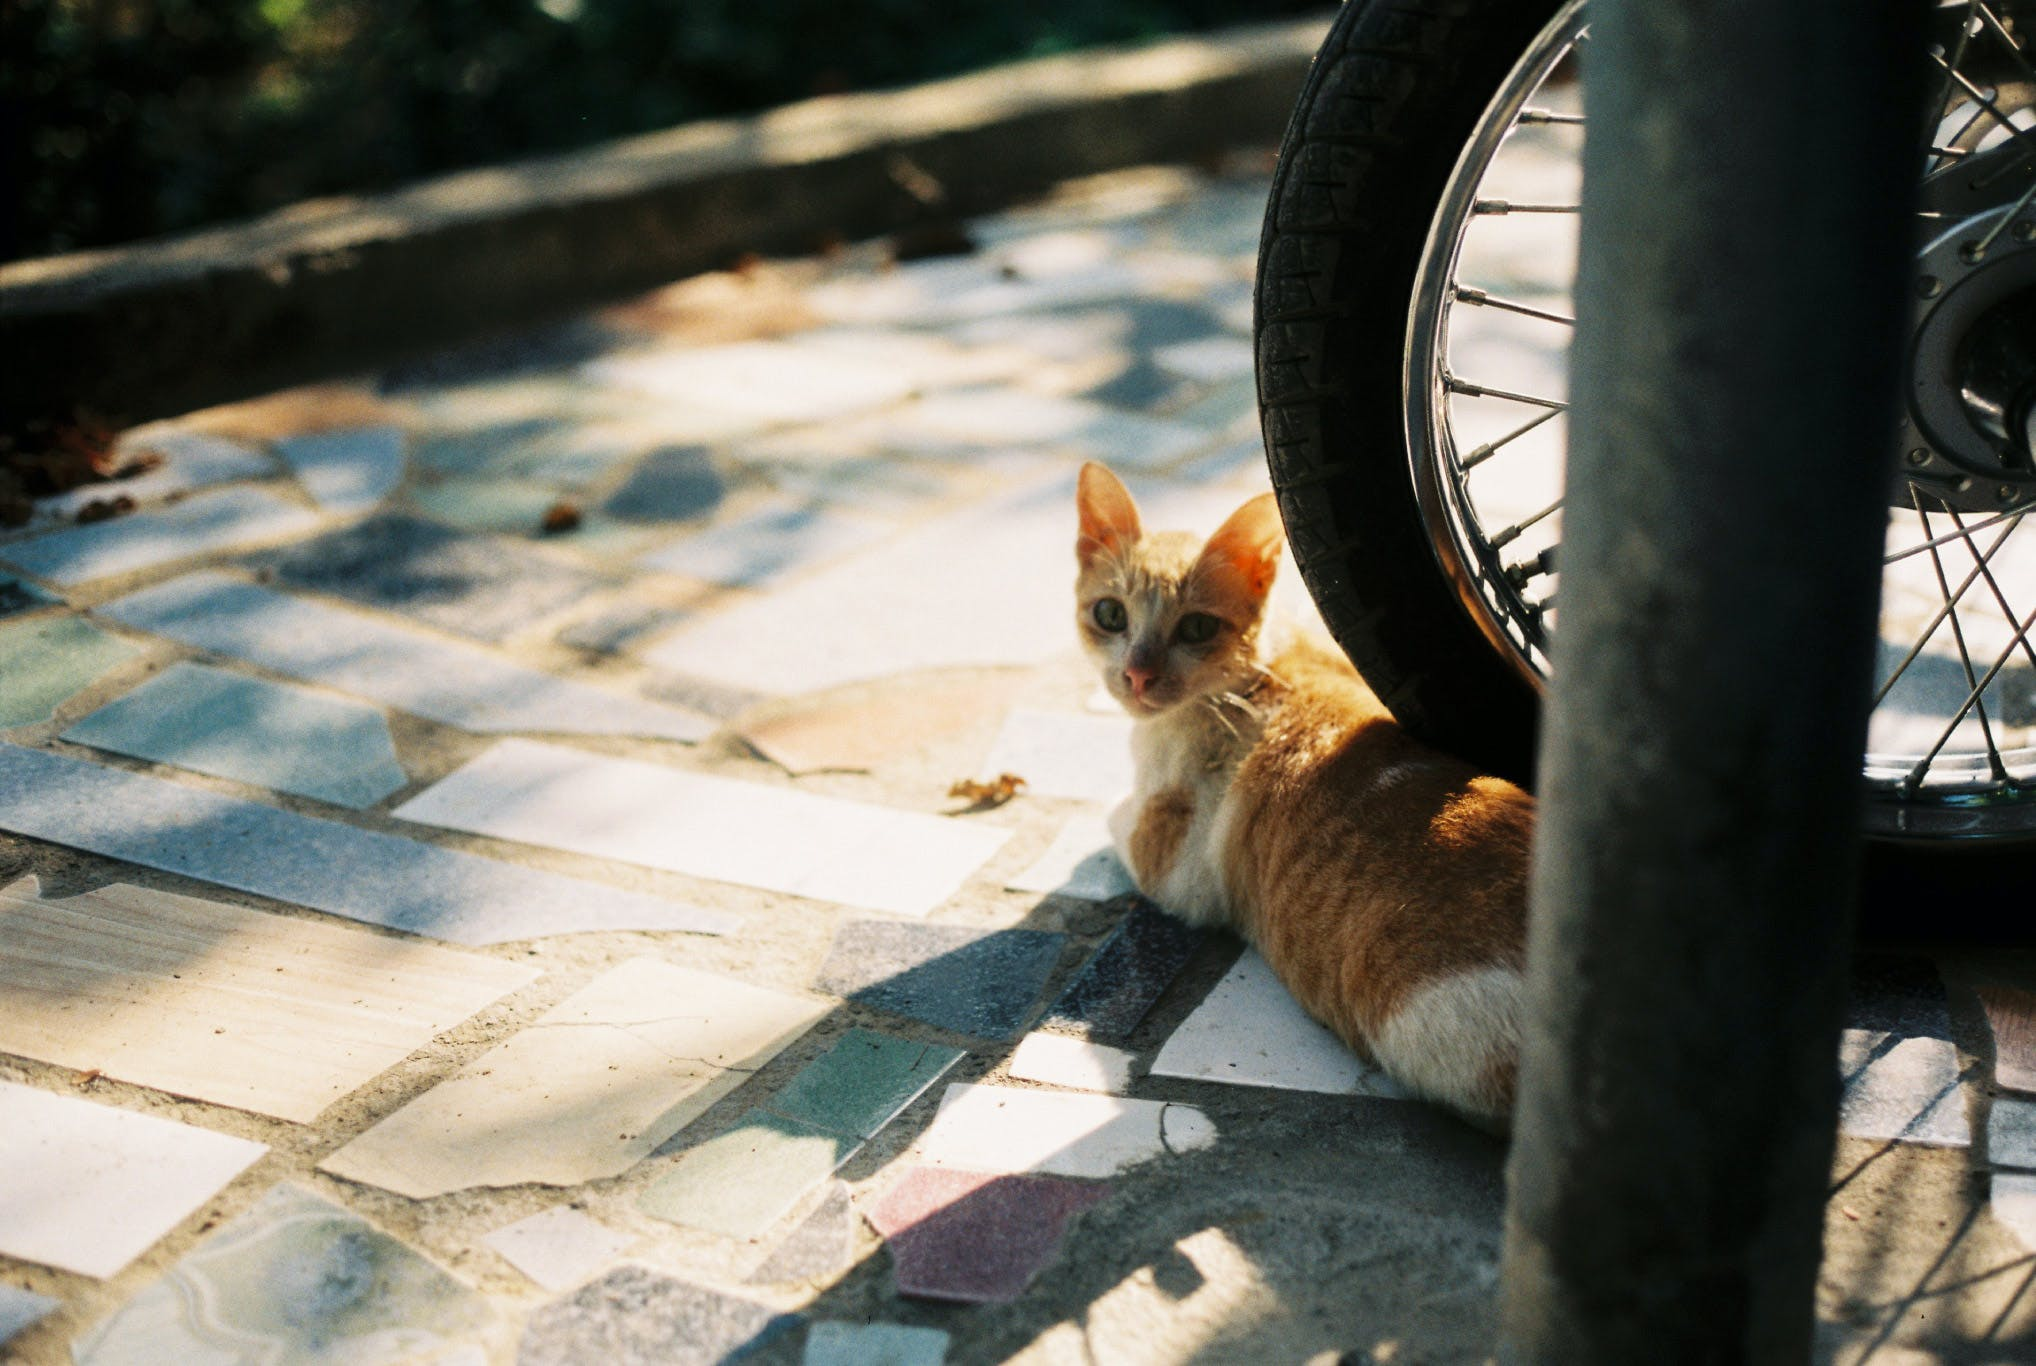 Orange Tabby Kitten on Motorcycle Wheel